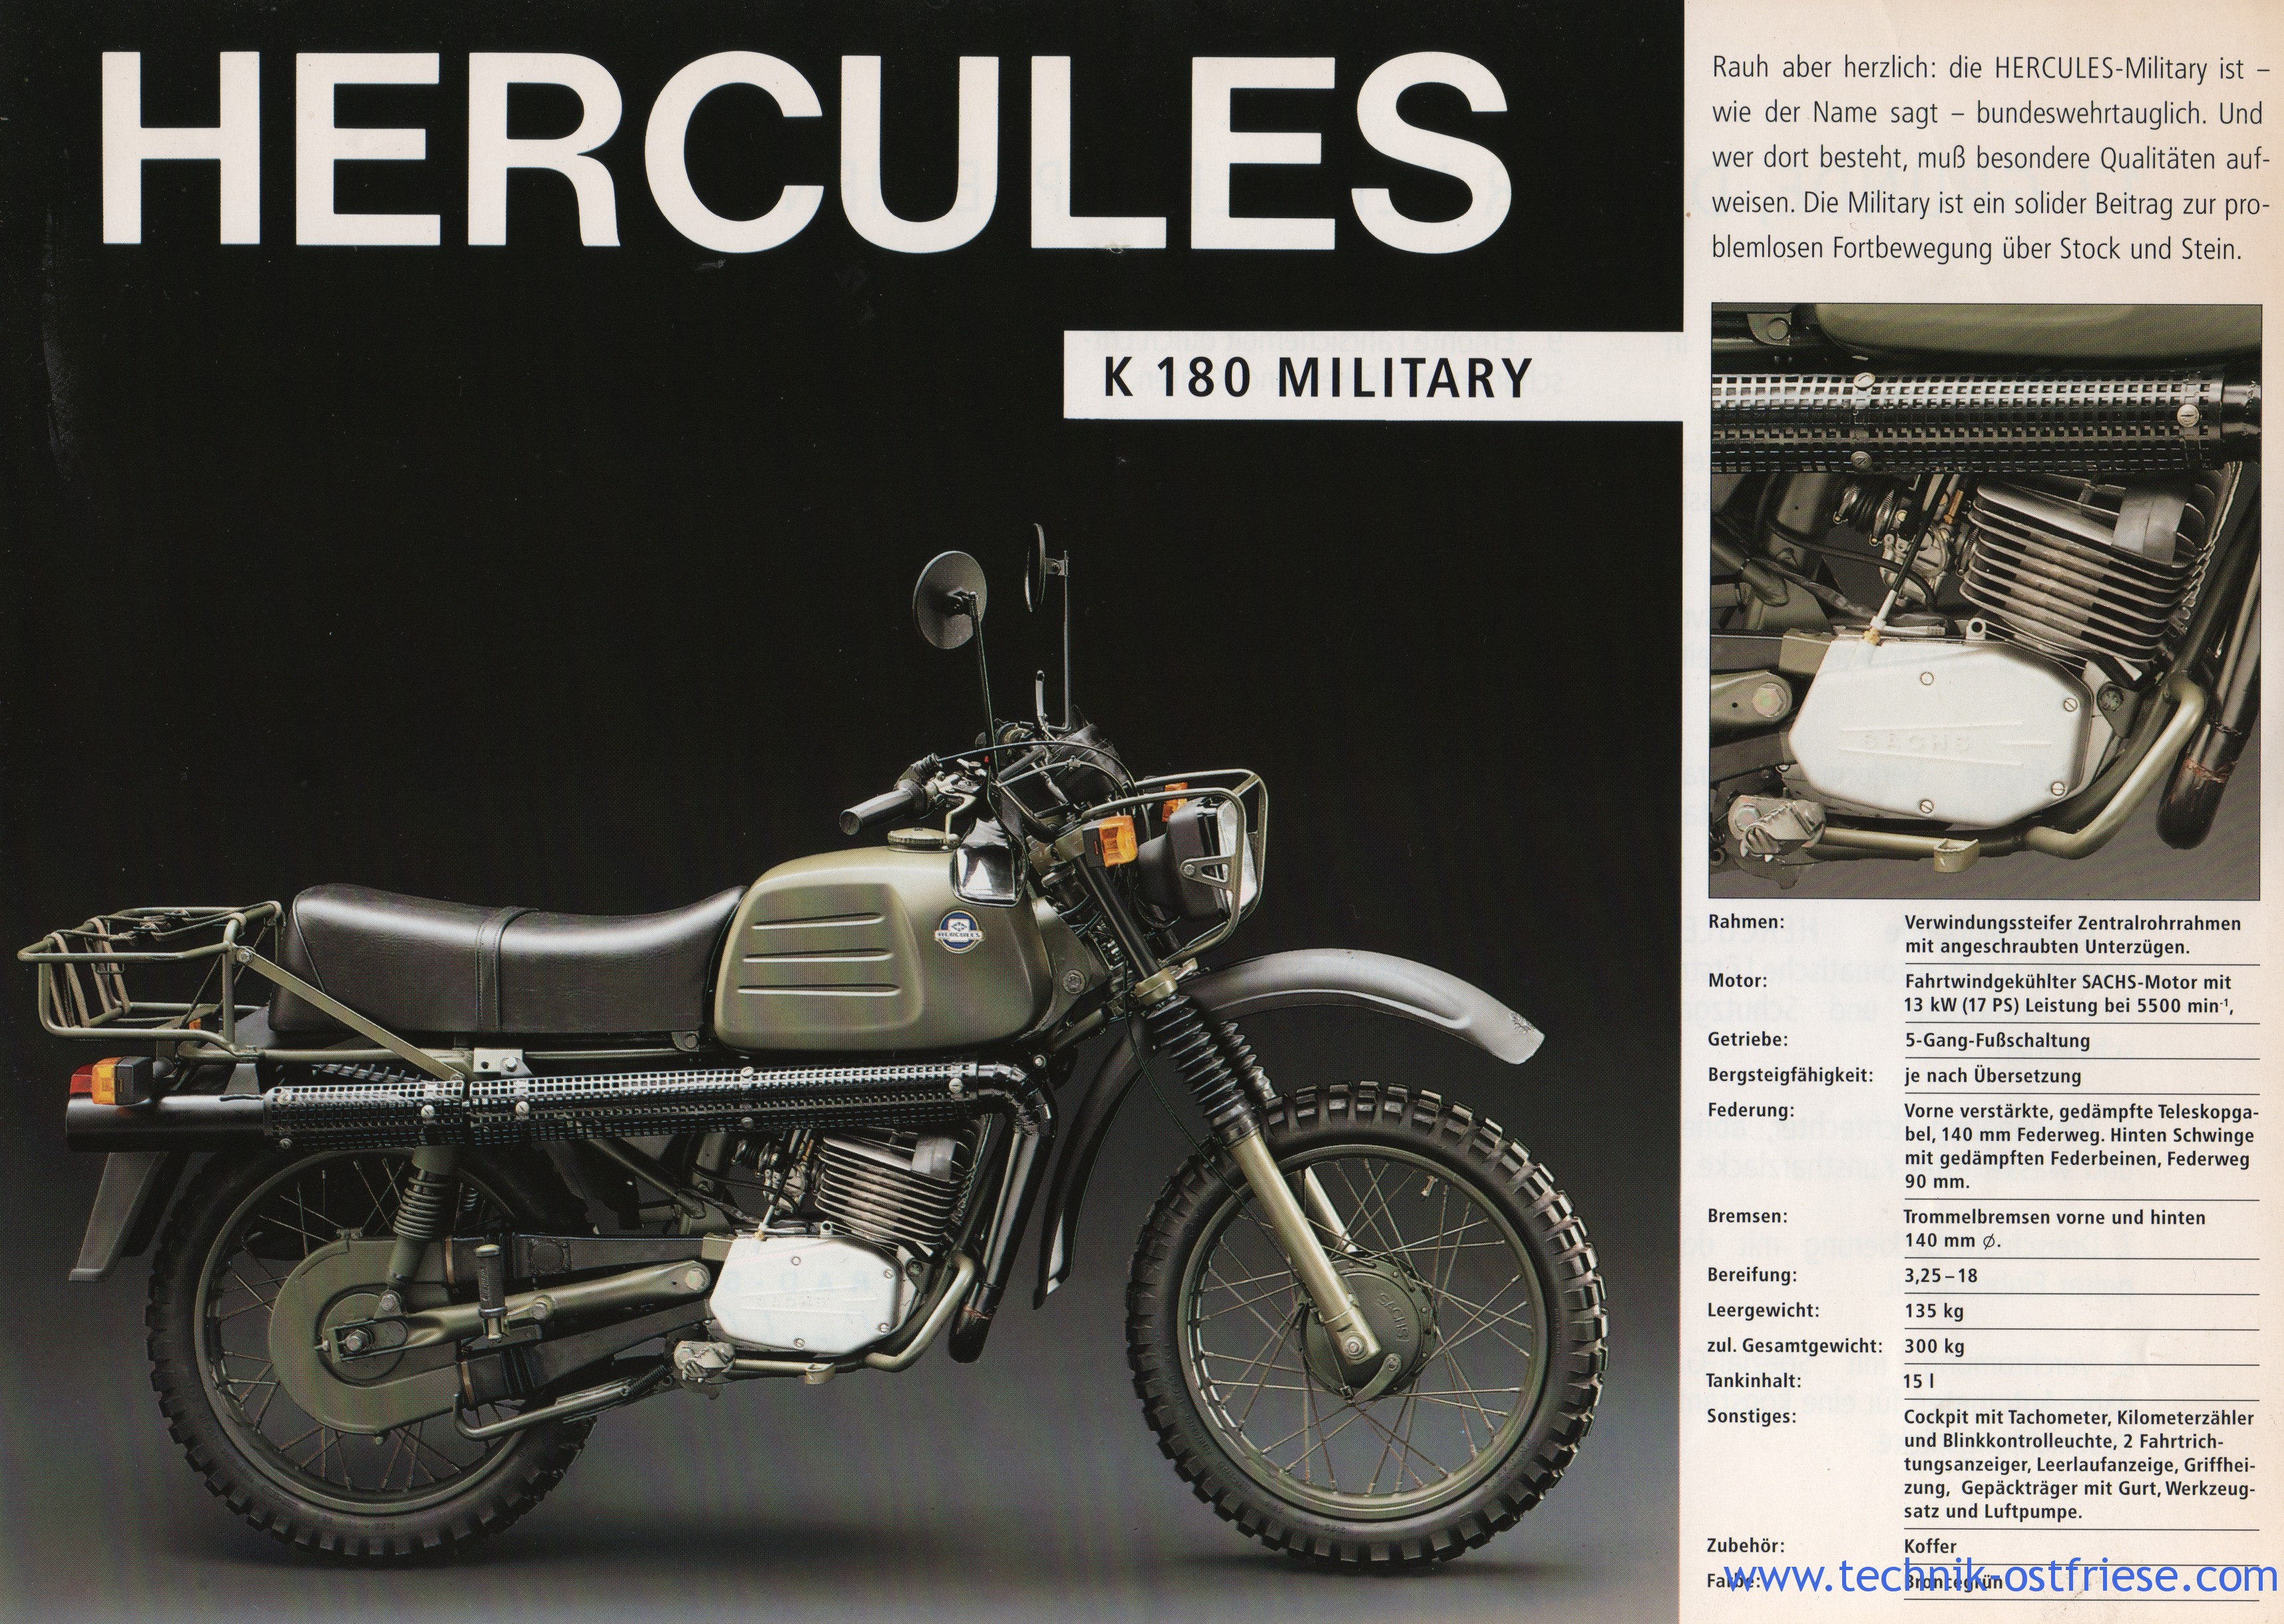 Hercules K 180 Military images #96619